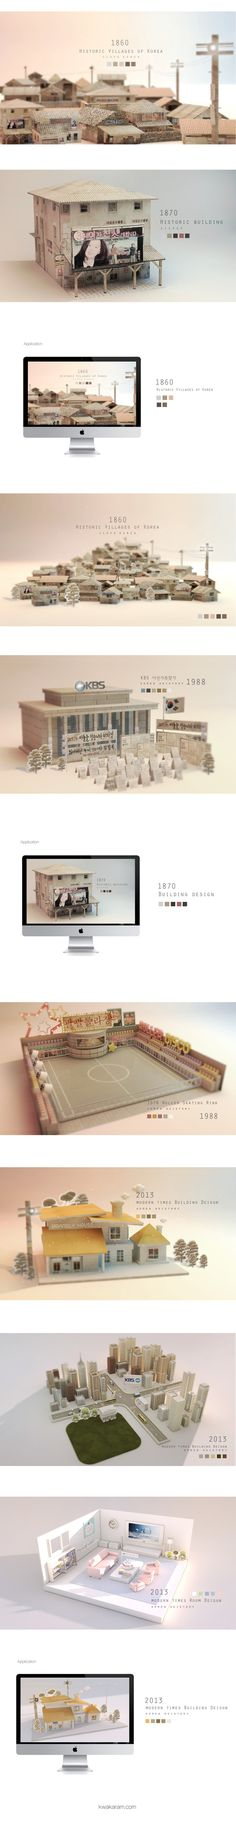 KBS project by aram kwak, via Behance